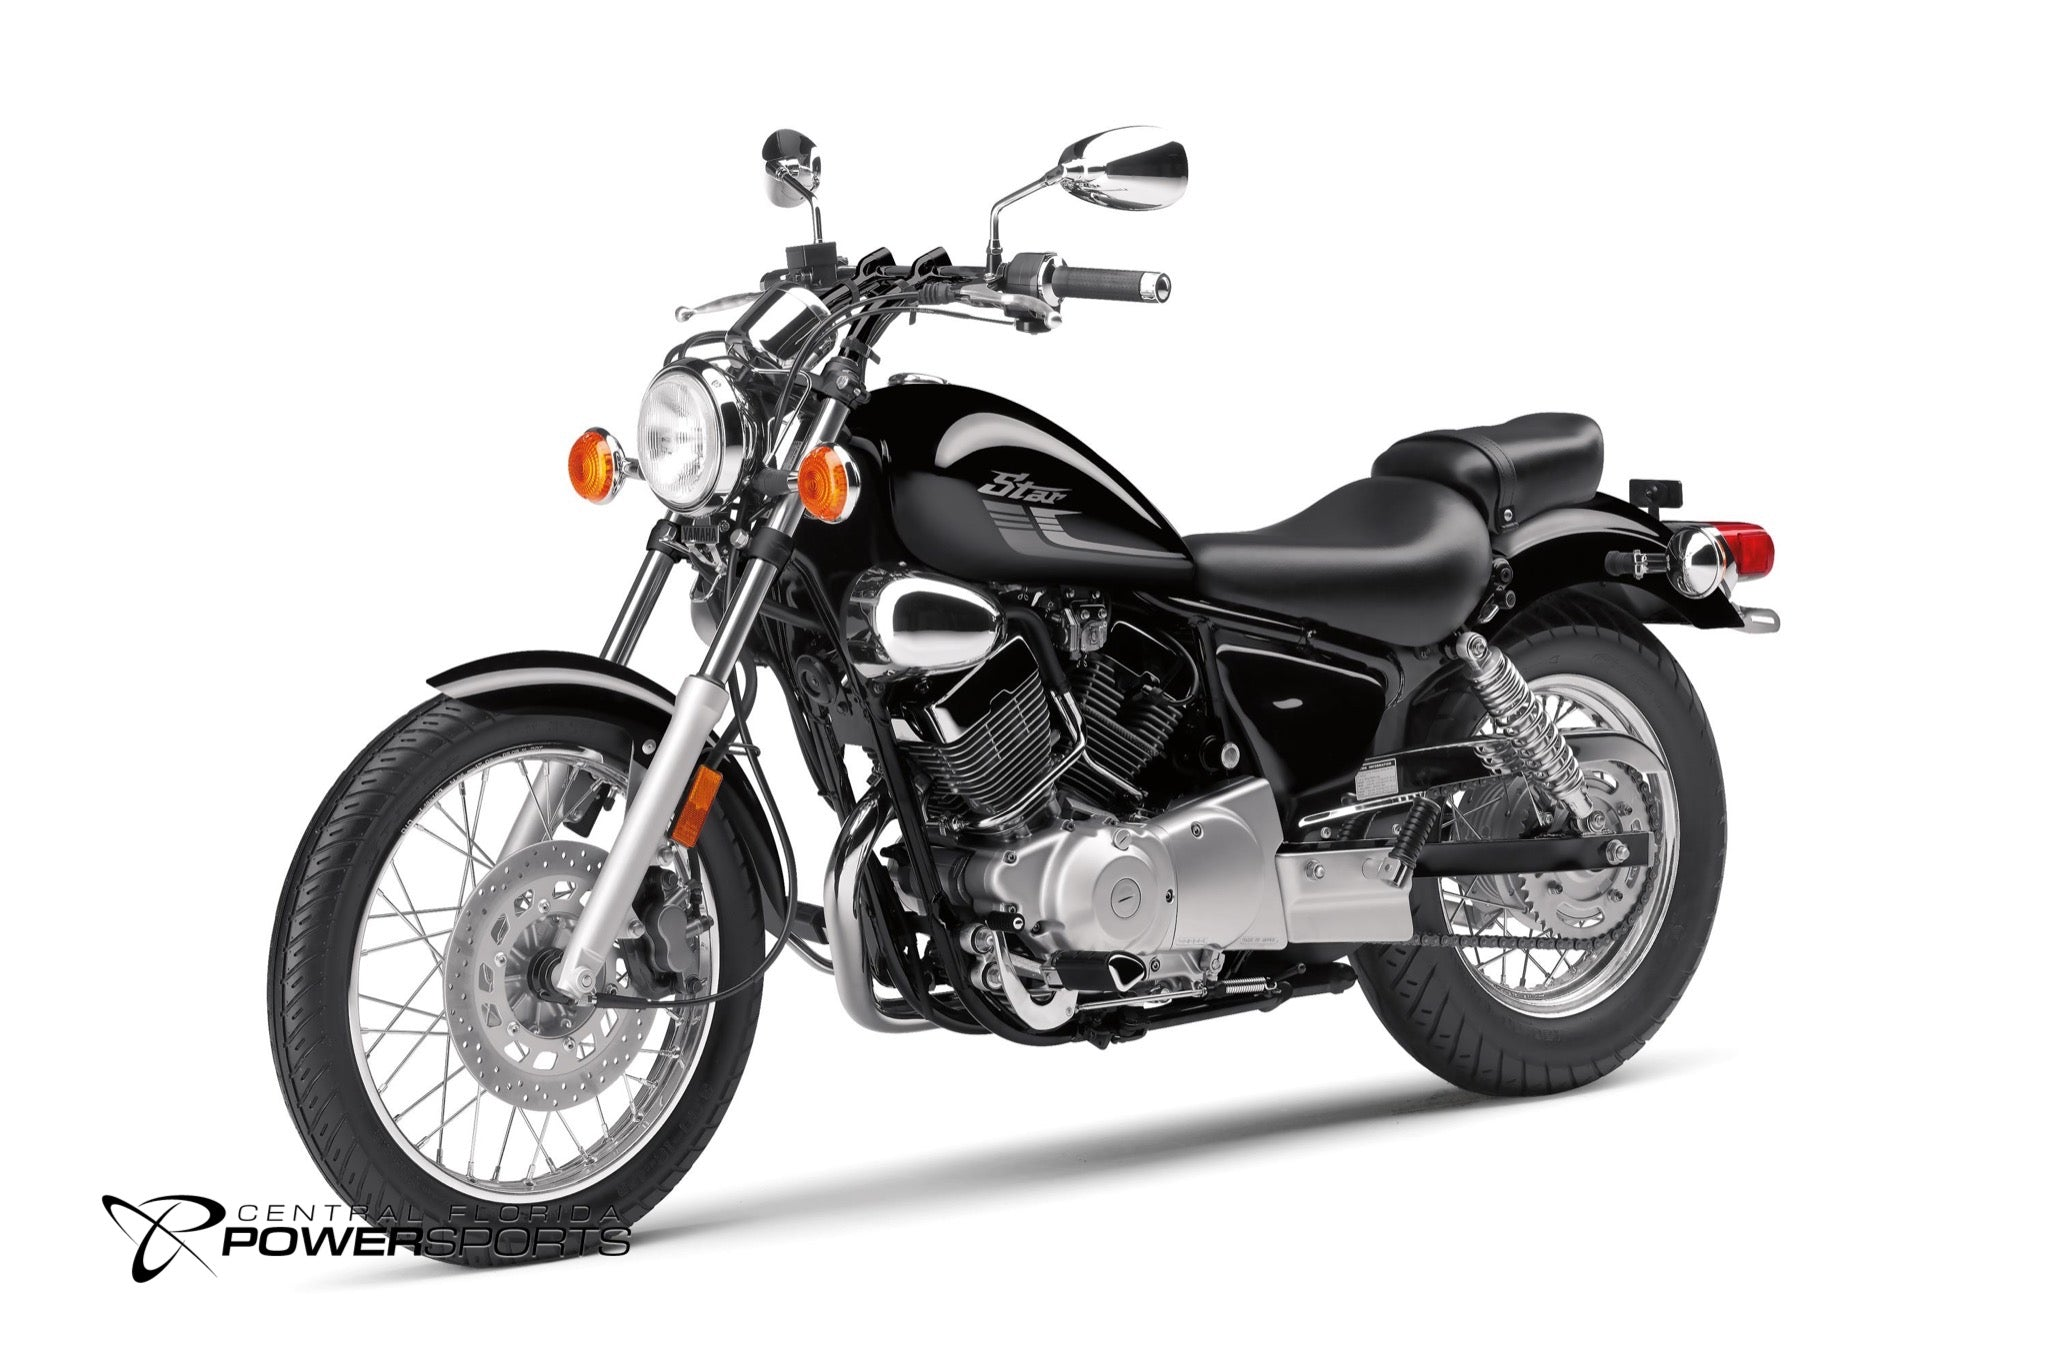 New 2018 Yamaha V Star 250 Motorcycle For Sale - Best Kissimmee ...